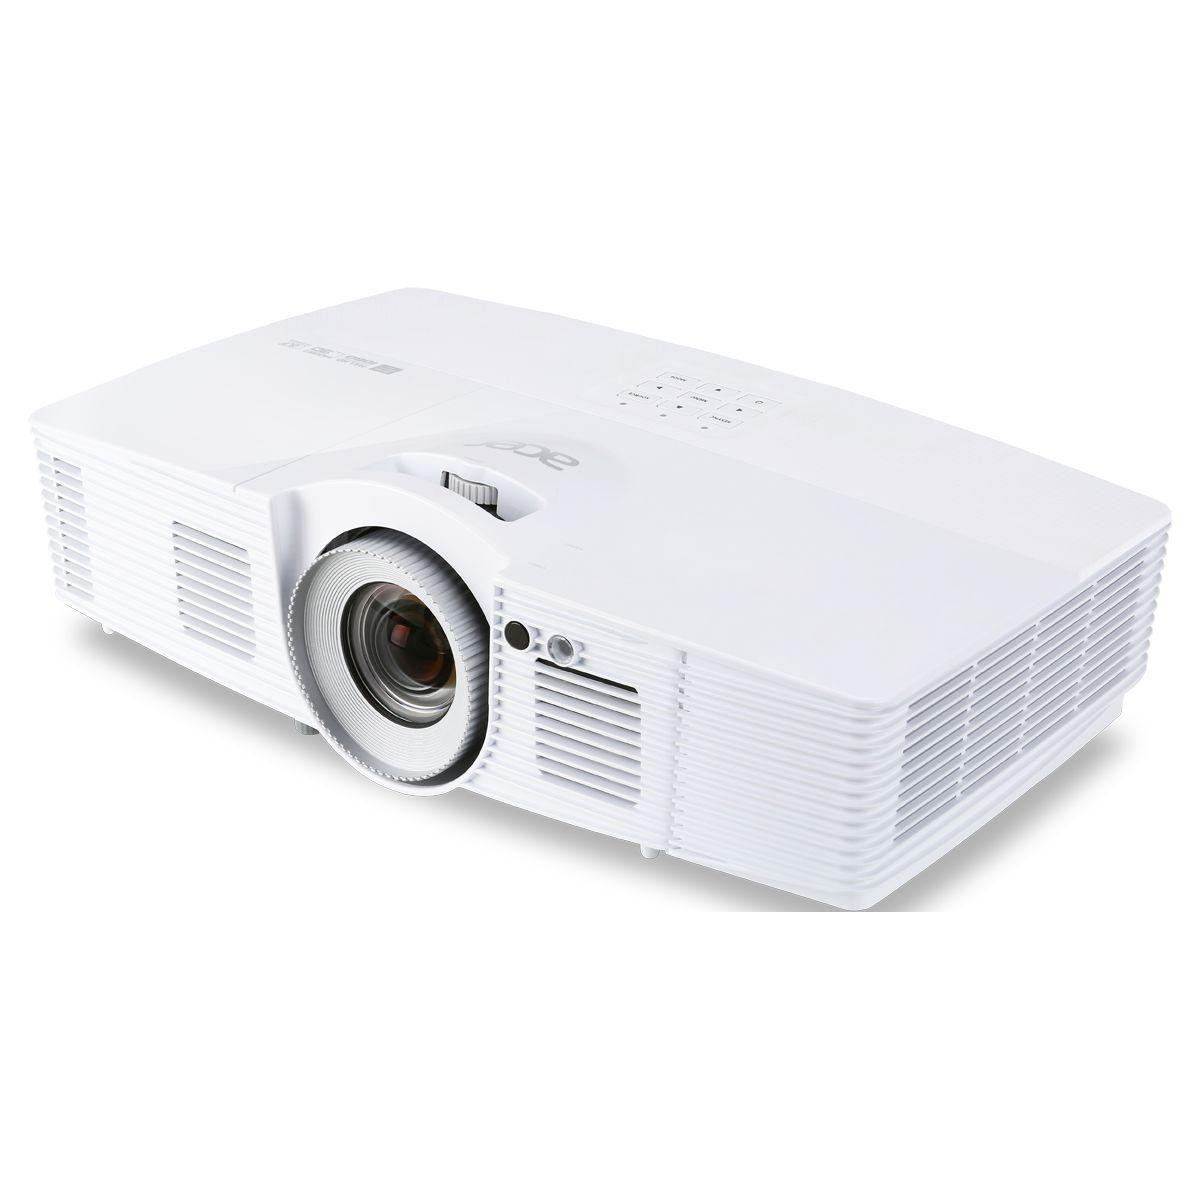 Vid�oprojecteur home cin�ma acer v7500 (photo)